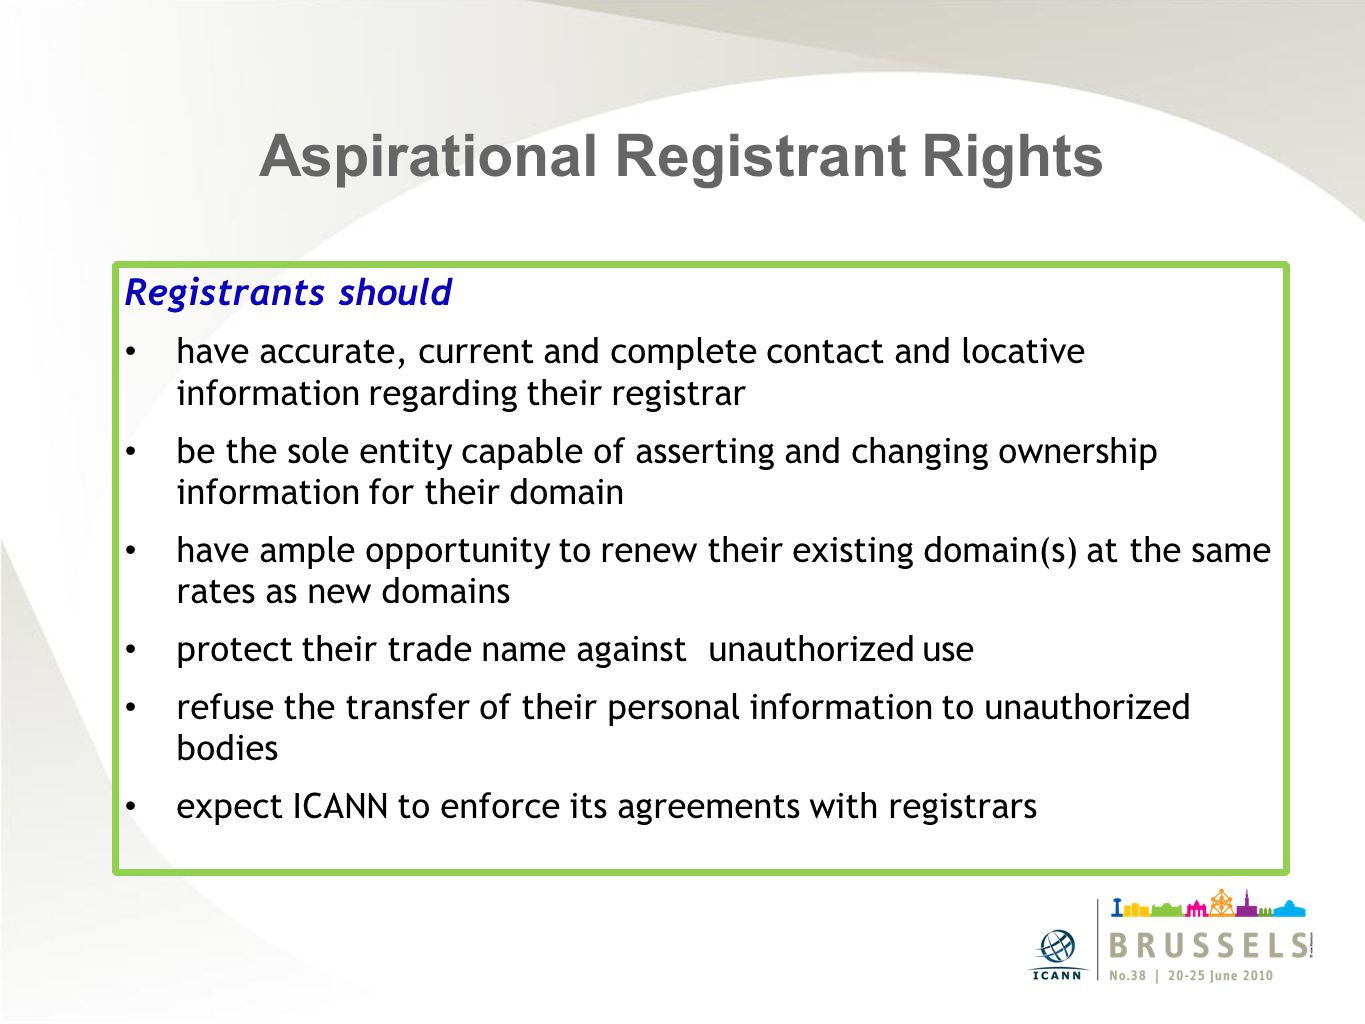 Aspirational Registrant Rights Registrants should have accurate, current and complete contact and locative information regarding their registrar be the sole entity capable of asserting and changing ownership information for their domain have ample opportunity to renew their existing domain(s) at the same rates as new domains protect their trade name against unauthorized use refuse the transfer of their personal information to unauthorized bodies expect ICANN to enforce its agreements with registrars